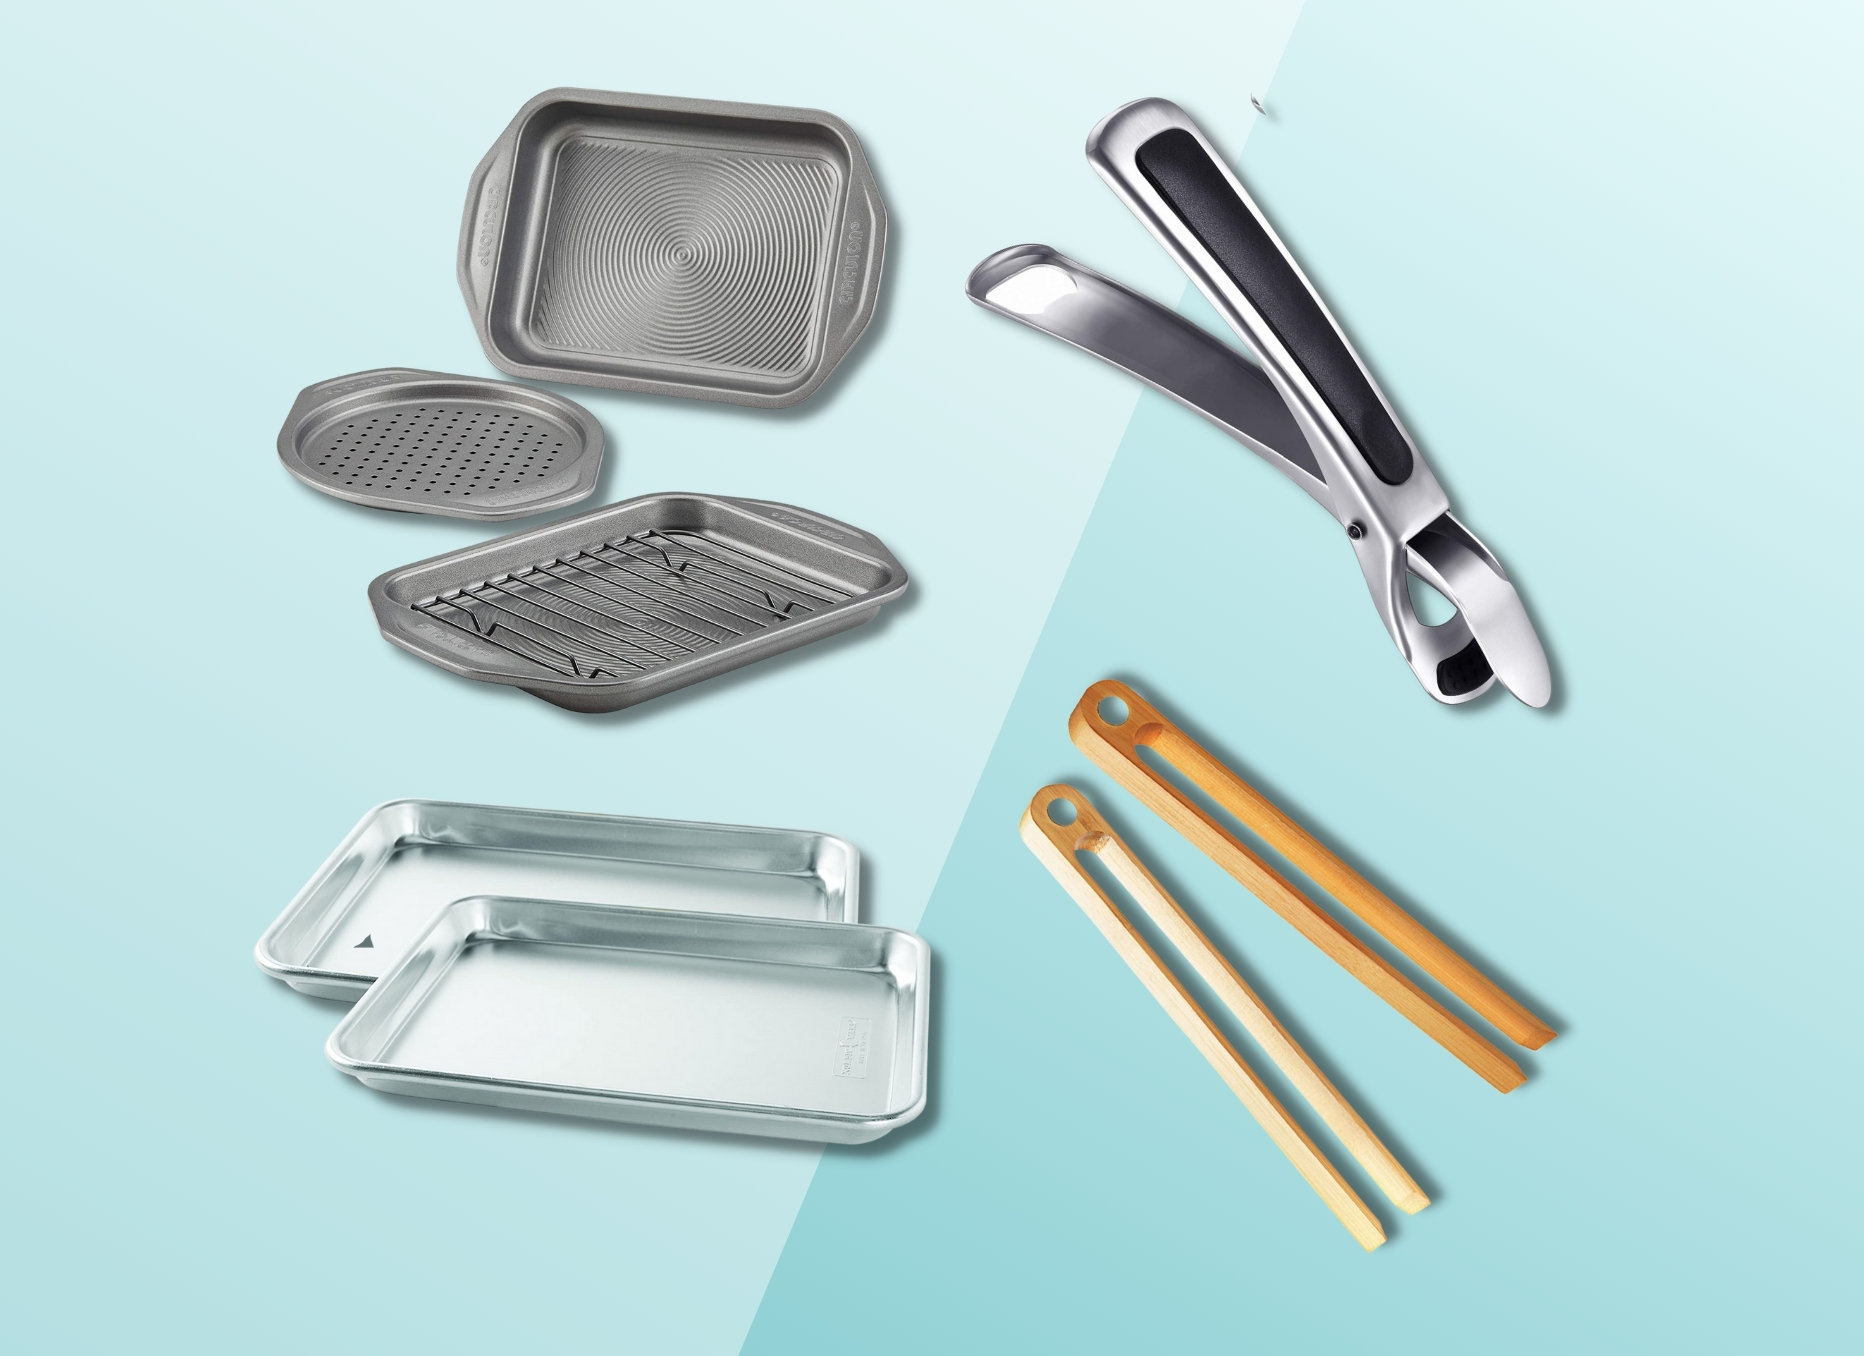 Toaster Oven Tools